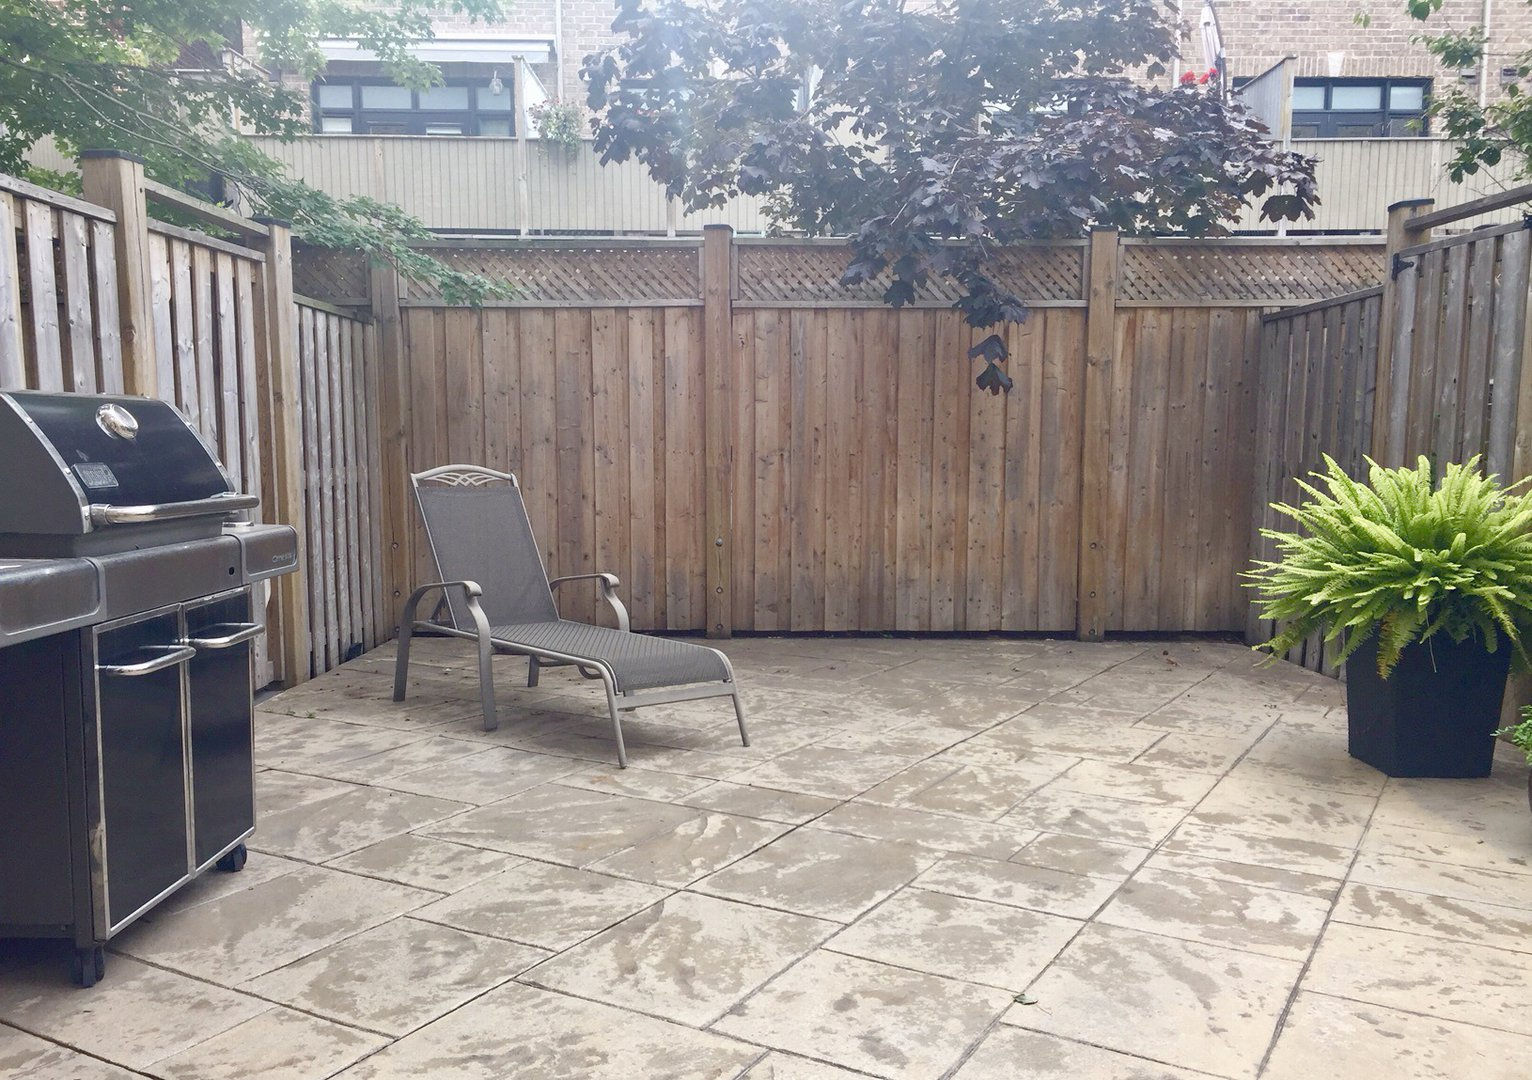 House for rent at 60 Superior Creek Ln, Etobicoke, ON. This is the patio terrace.